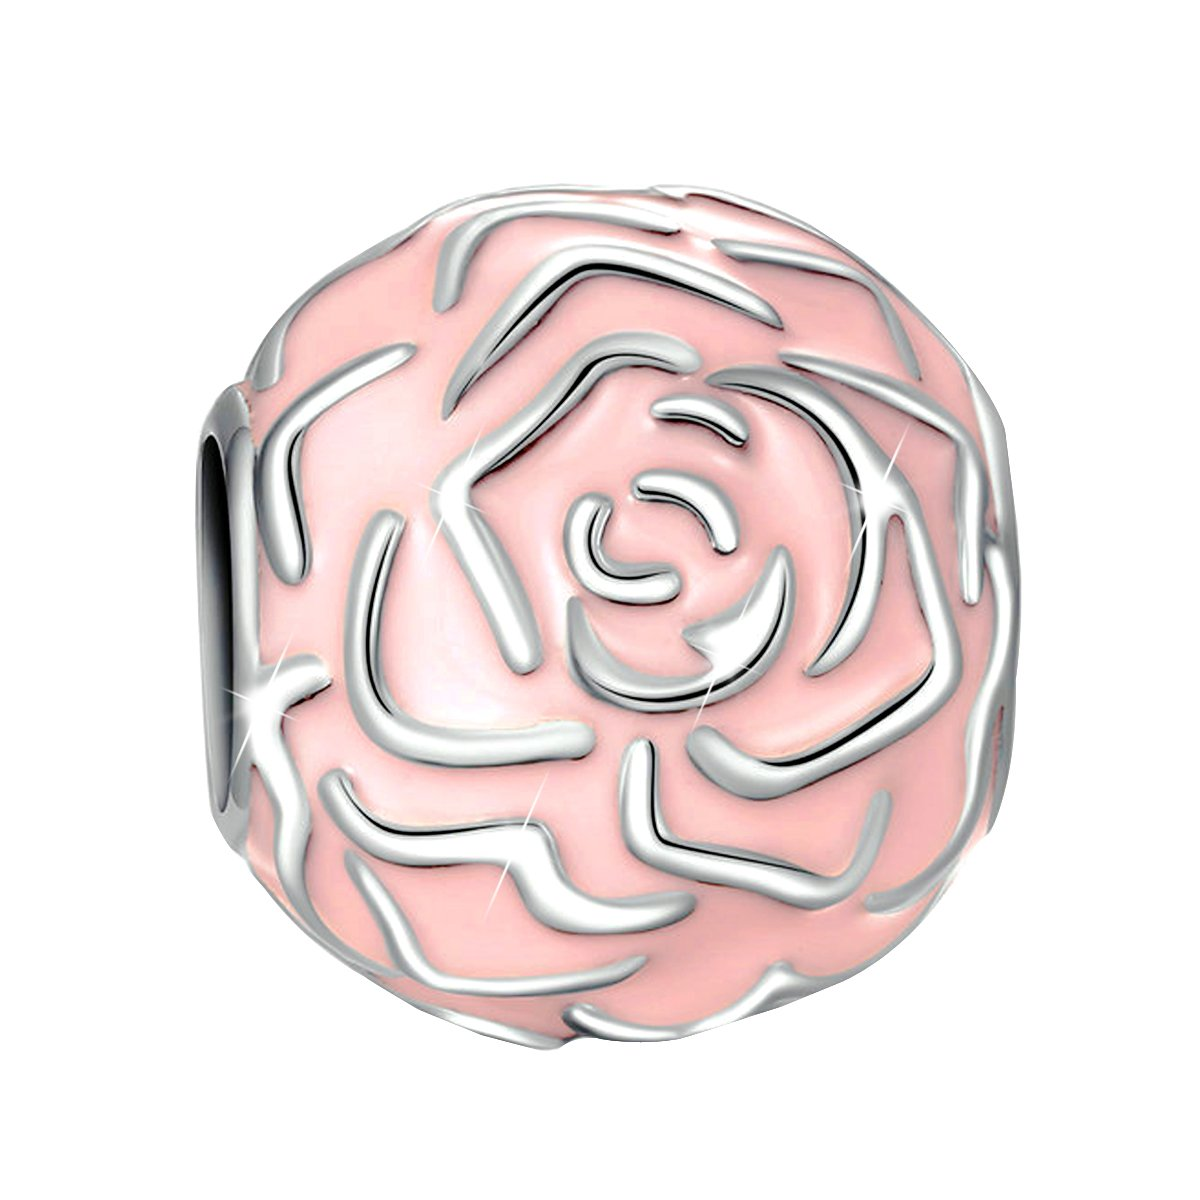 Syangpang 925 sterling silver charm forever fit for bracelet necklace jewelry rose enamel design bead